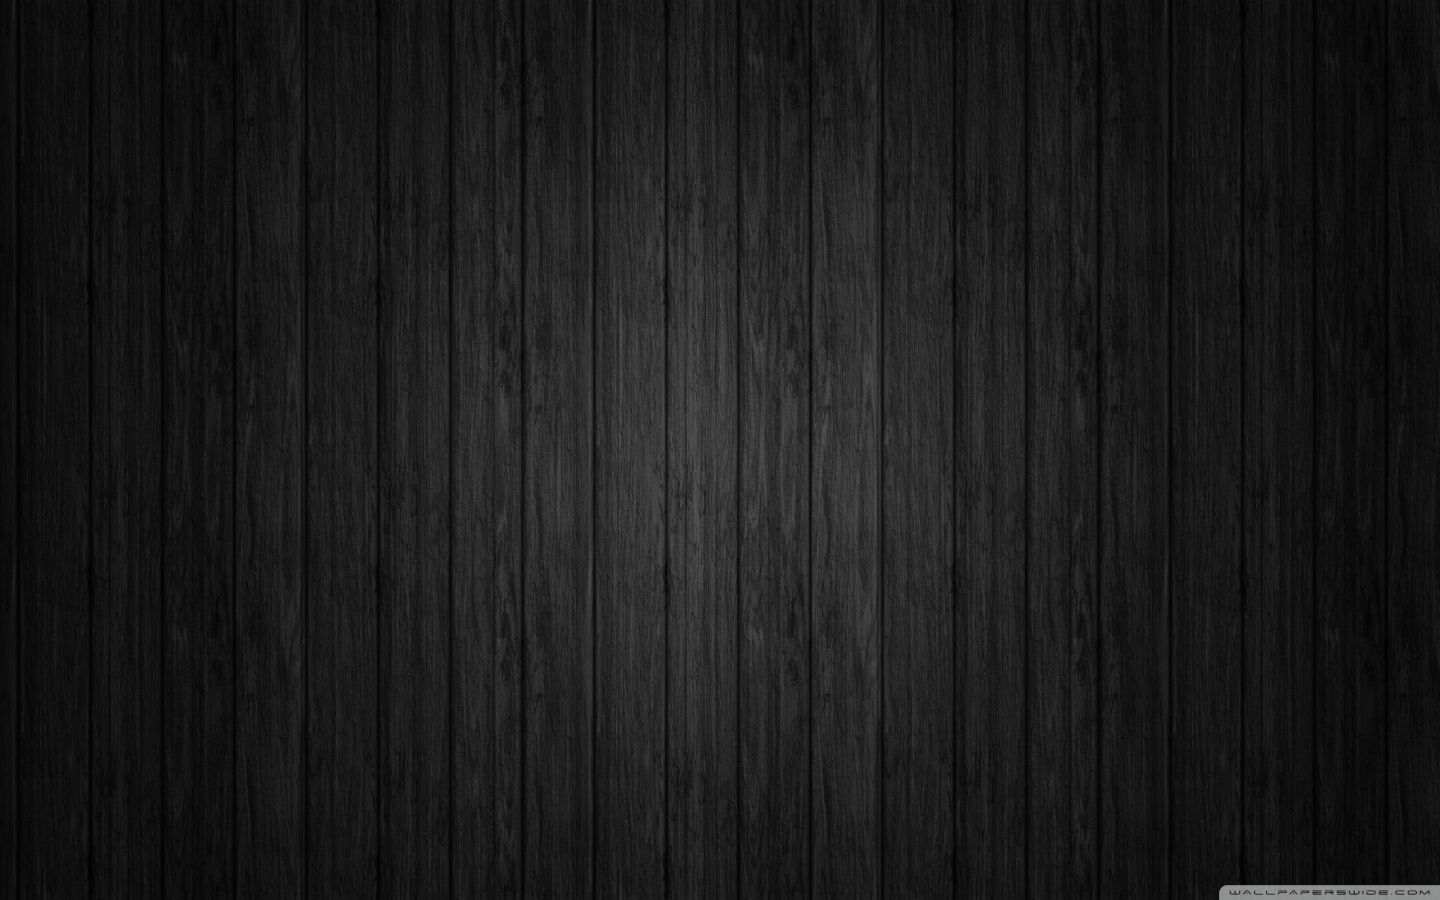 Ultra Black 4k Wallpapers 1080p Black Background Images Black Wood Background Background Hd Wallpaper